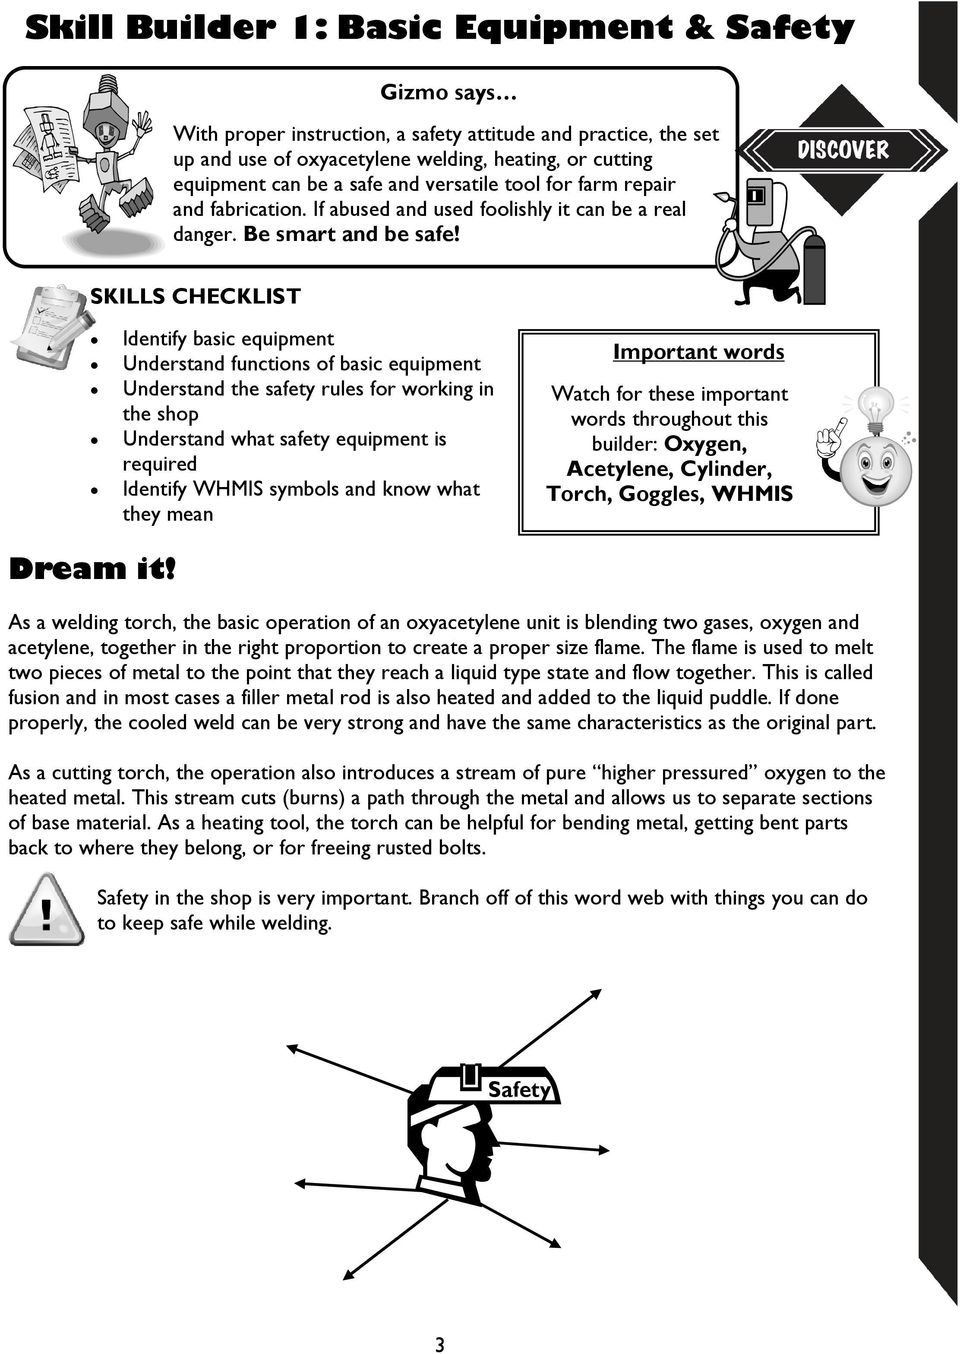 4 H Machine Series Discovering Oxyacetylene Welding Cutting Pdf Oxy Acetylene Equipment Diagram Skills Checklist Identify Basic Understand Functions Of The Safety Rules For Working